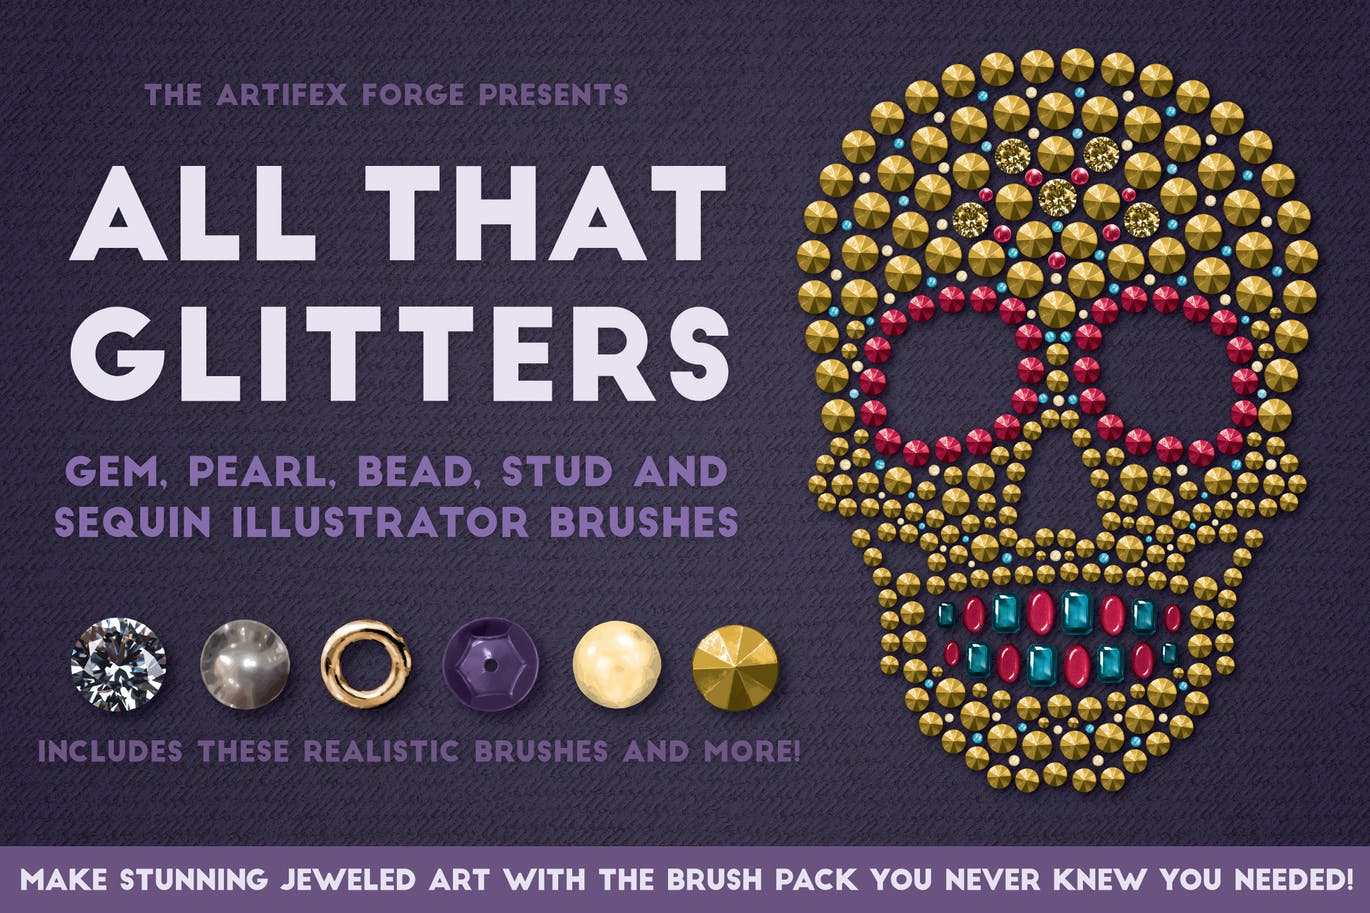 All that glitters brushes